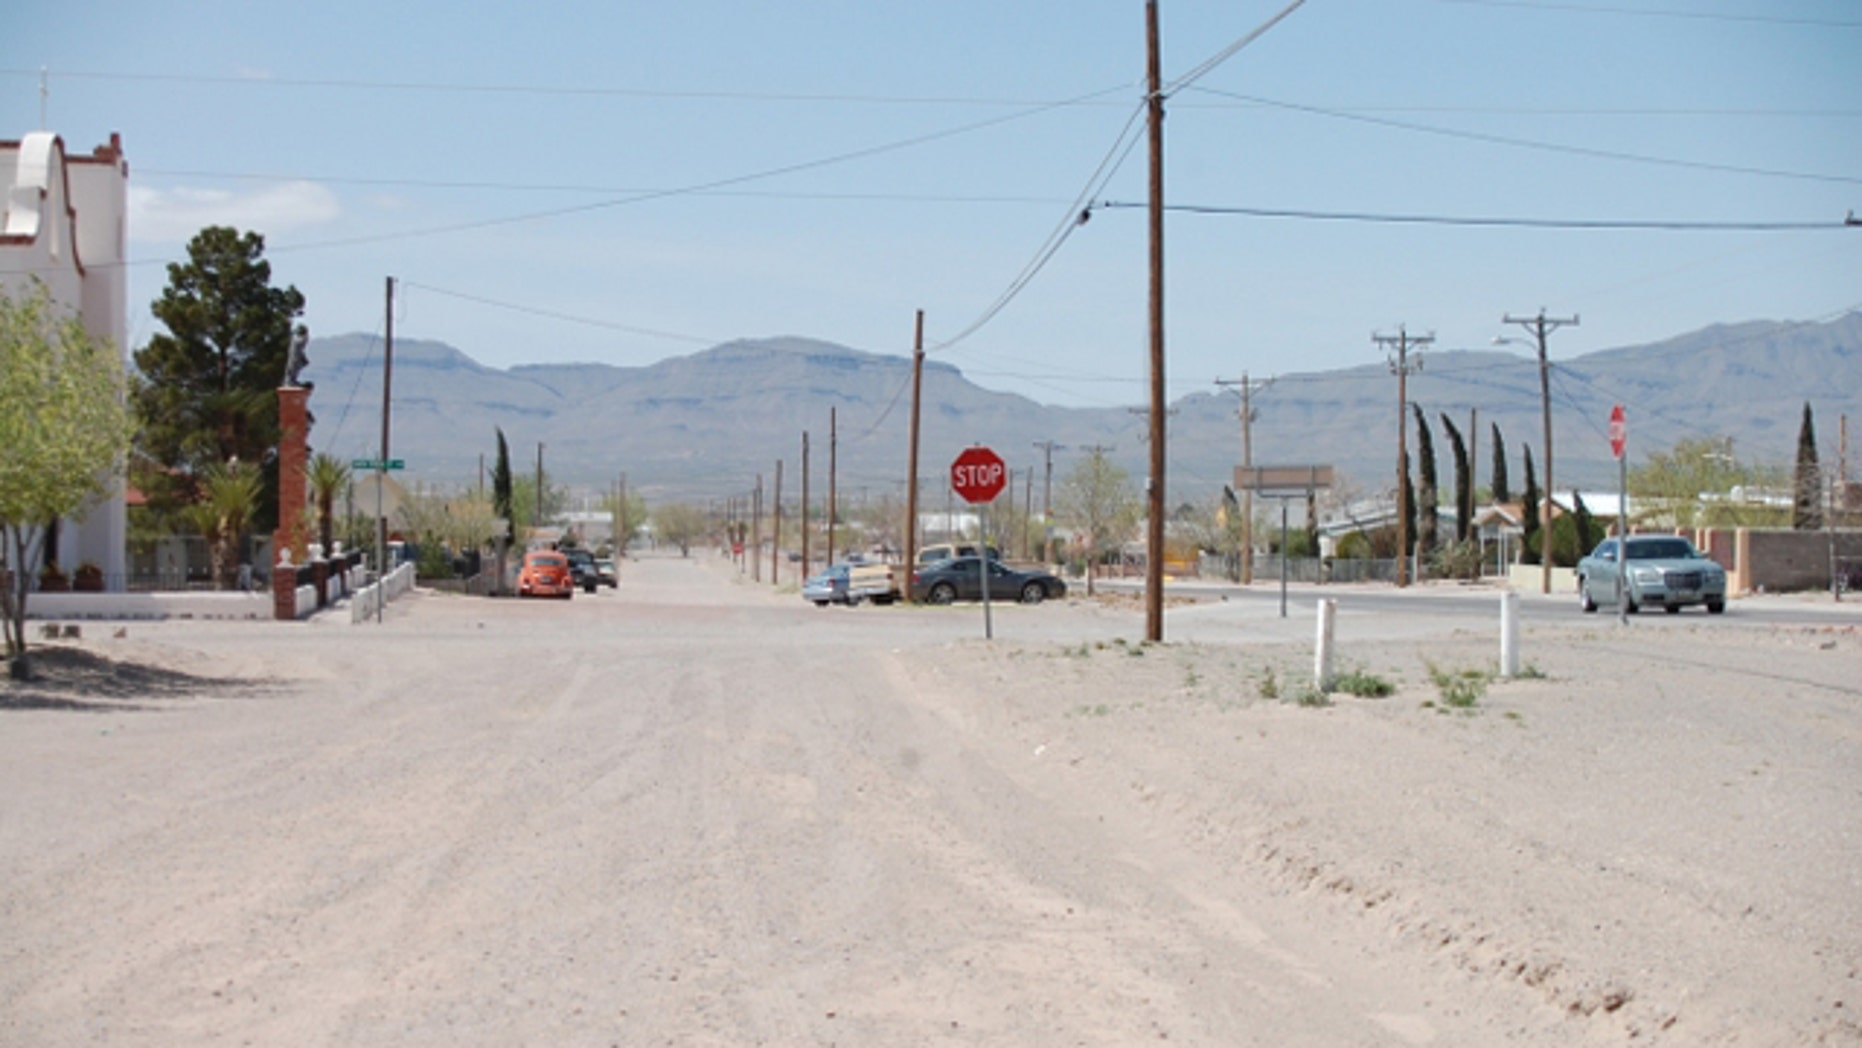 April 2, 2010: A street in Fort Hancock, Texas, roughly 25 miles west of Fort Quitman, where four Hudspeth County employees were working on a remote, unpaved road when an unknown gunman fired from across the Rio Grande at about 10:30 a.m. Thursday. Mexico can be seen in the background. (FoxNews.com/Joshua Rhett Miller)